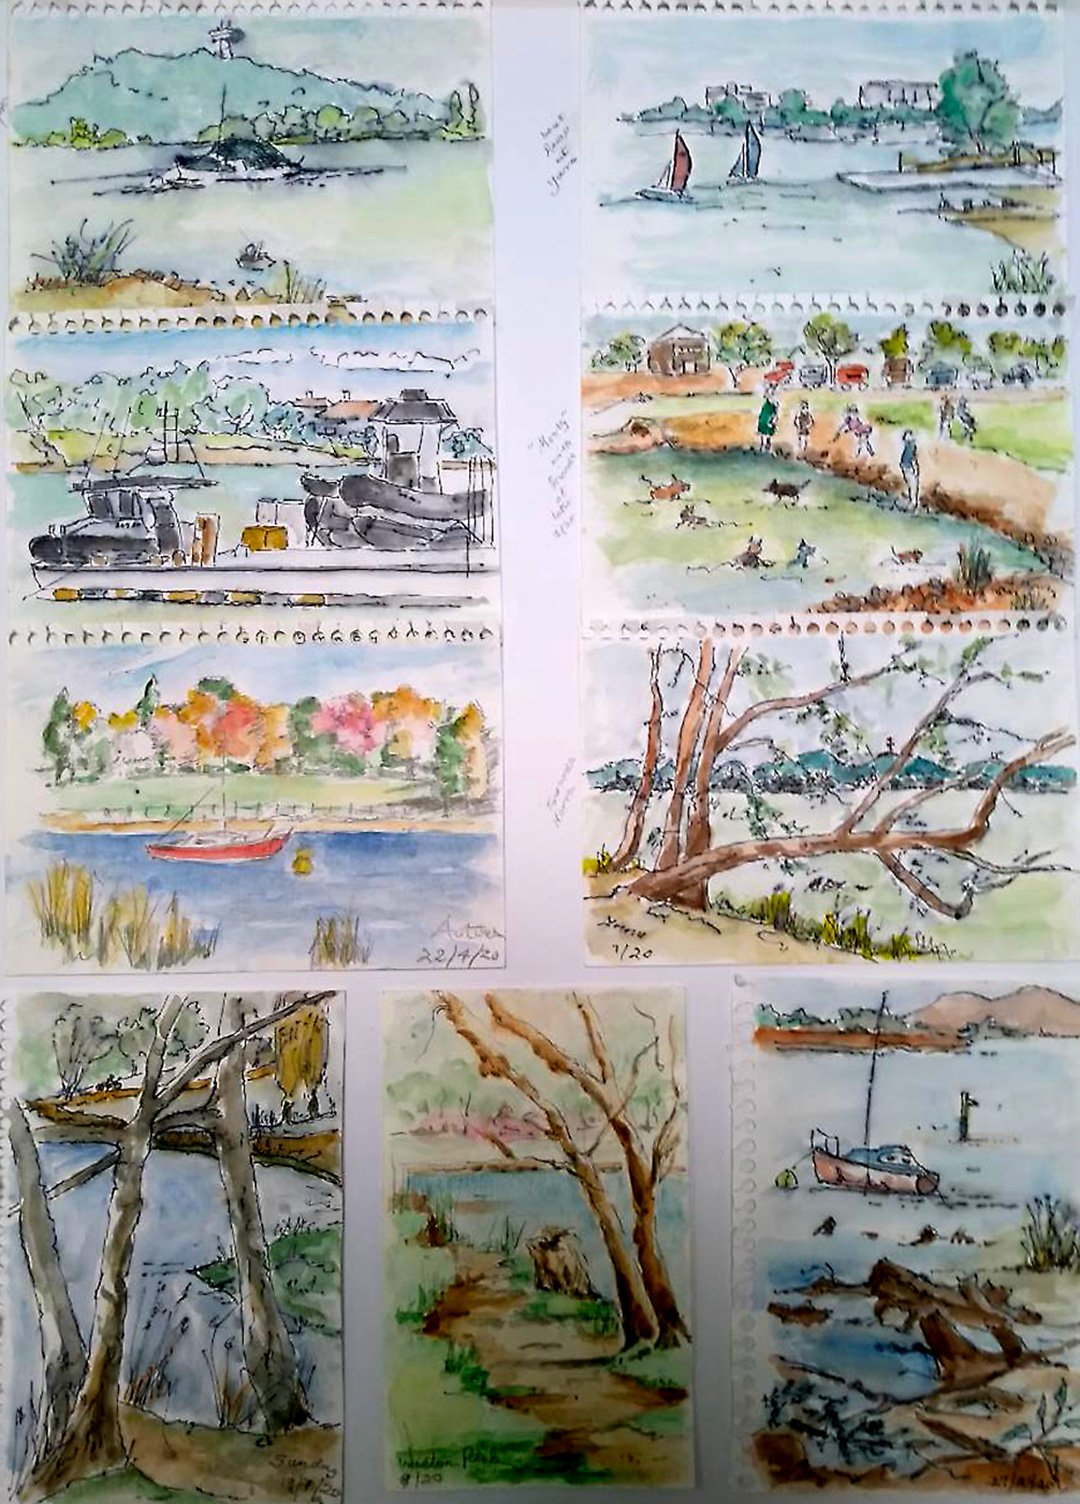 Jill Mail | 2021 | Lake Burley Griffin selected sketches on COVID walks | Watercolour pen on paper | 64x51cm